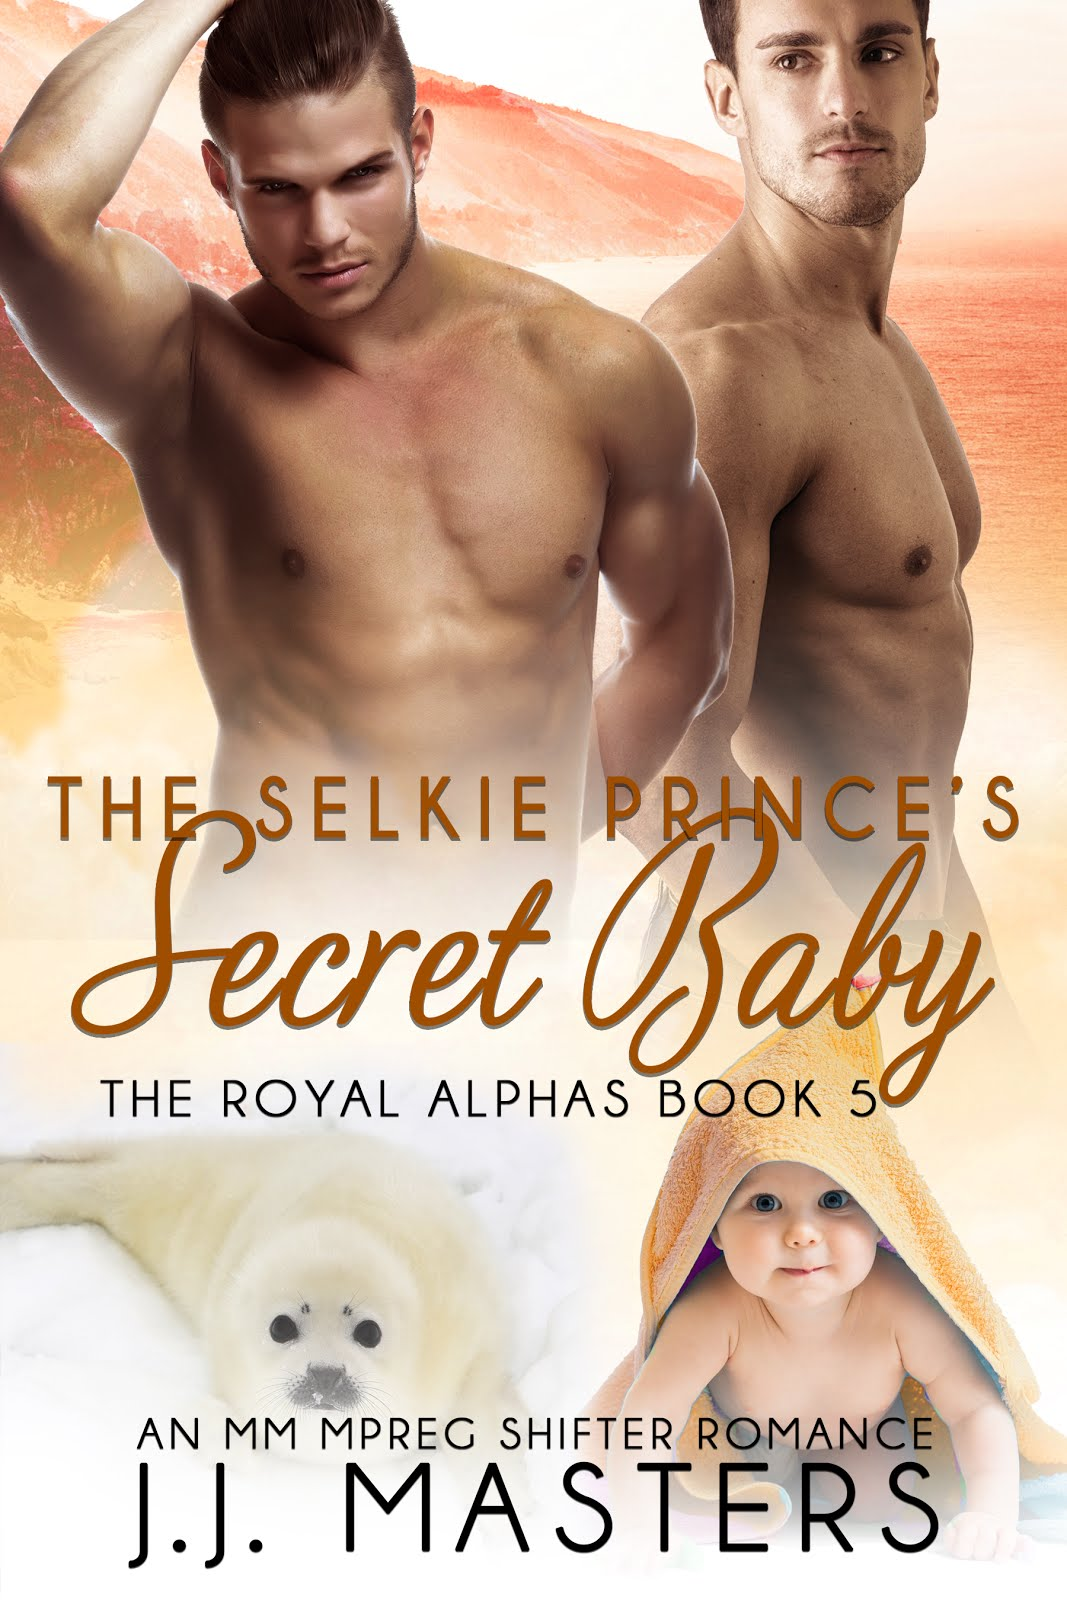 JJ Masters Author The Selkie Princes The Royal Alphas Series